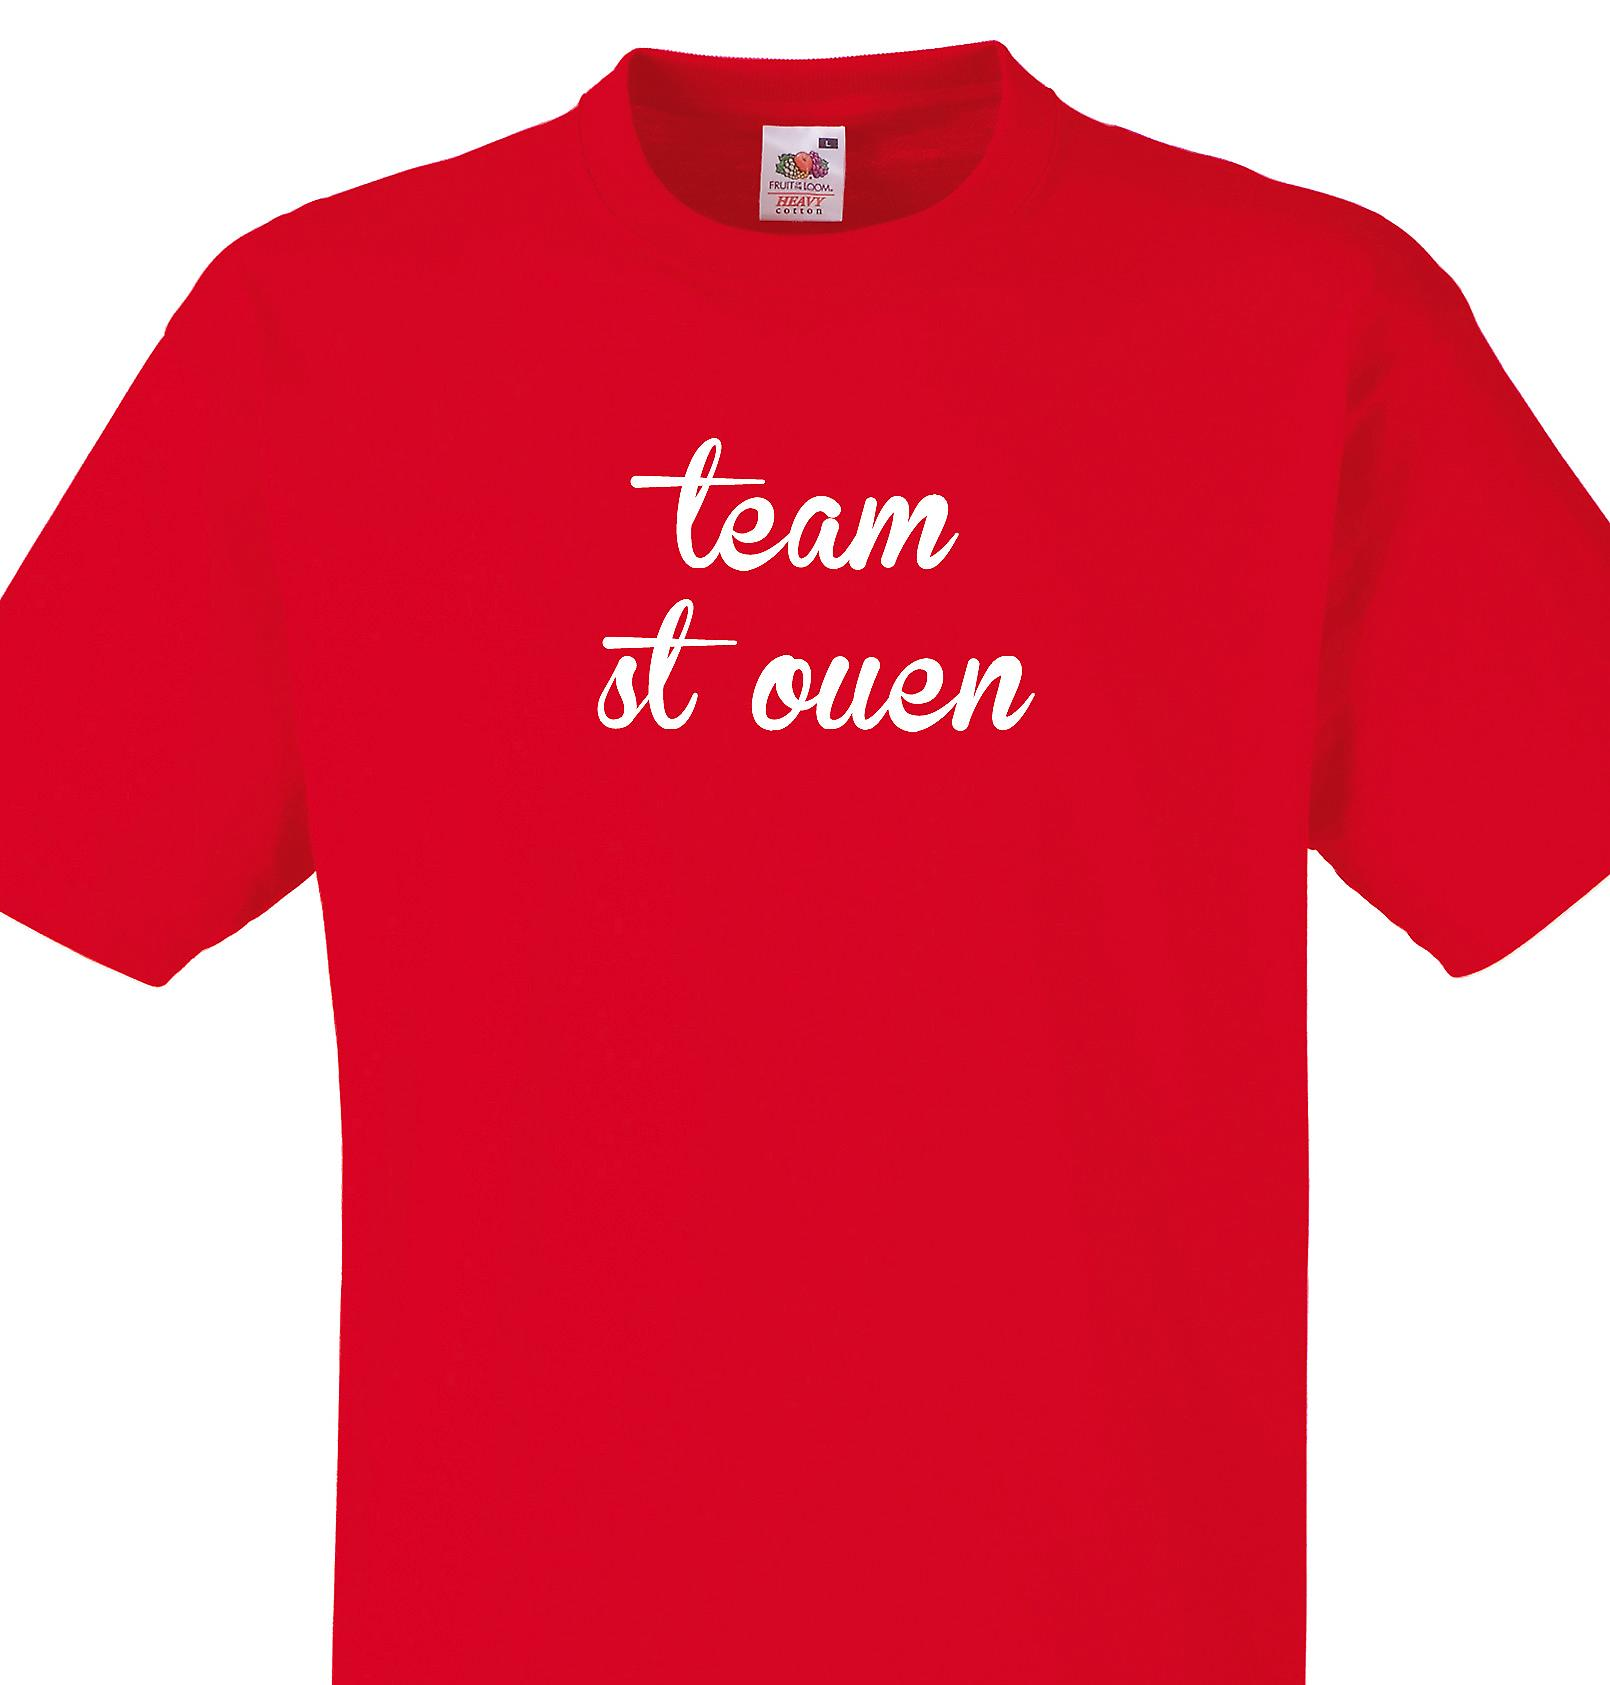 Team St ouen Red T shirt